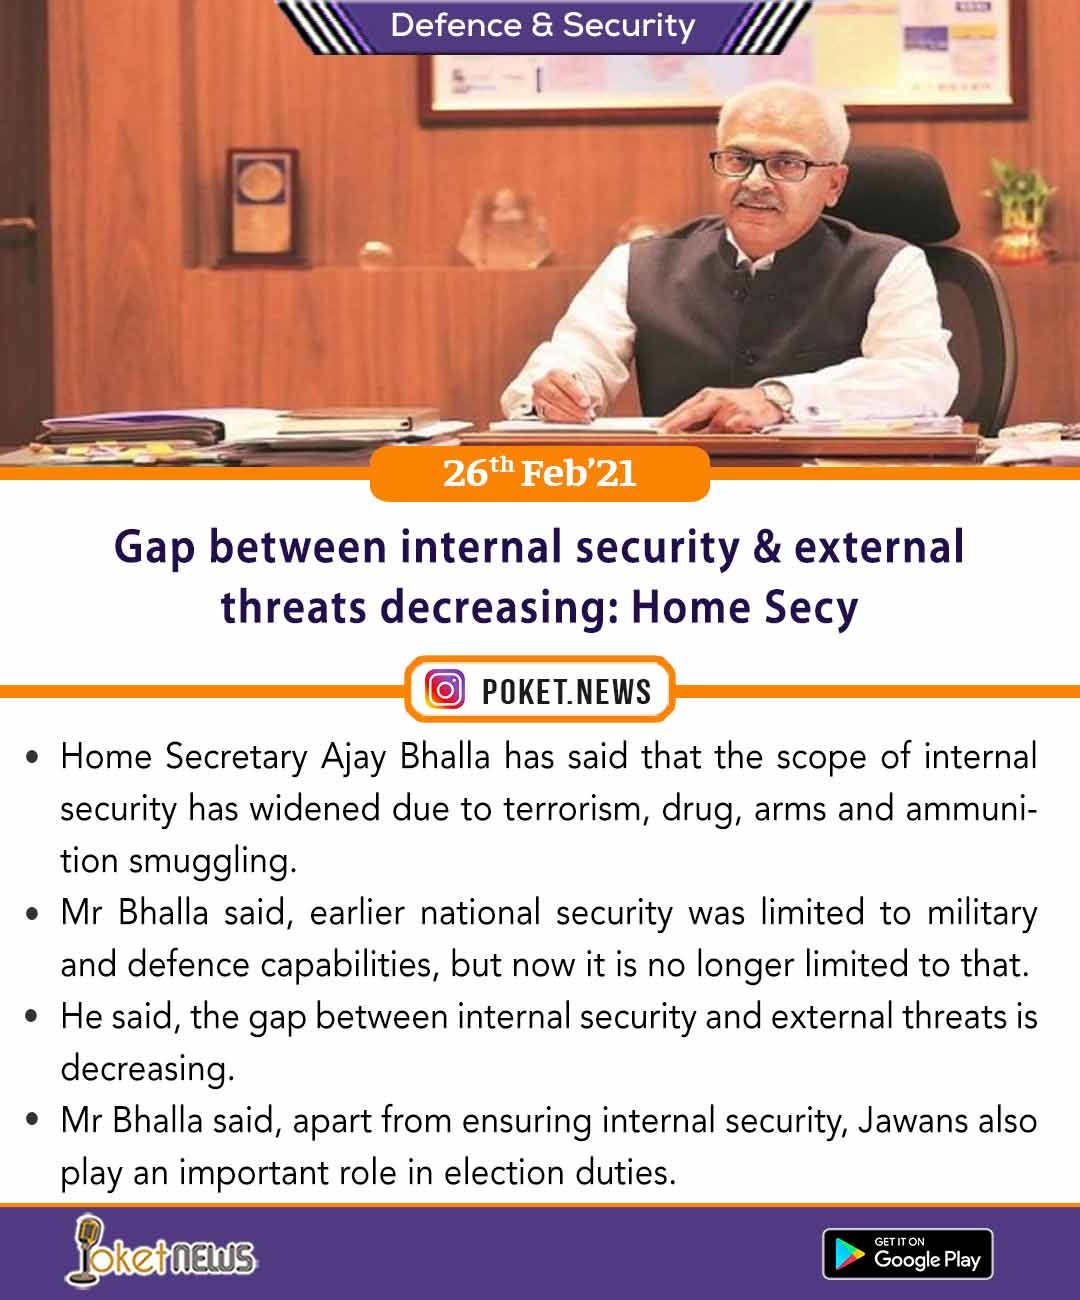 Gap between internal security & external threats decreasing: Home Secy